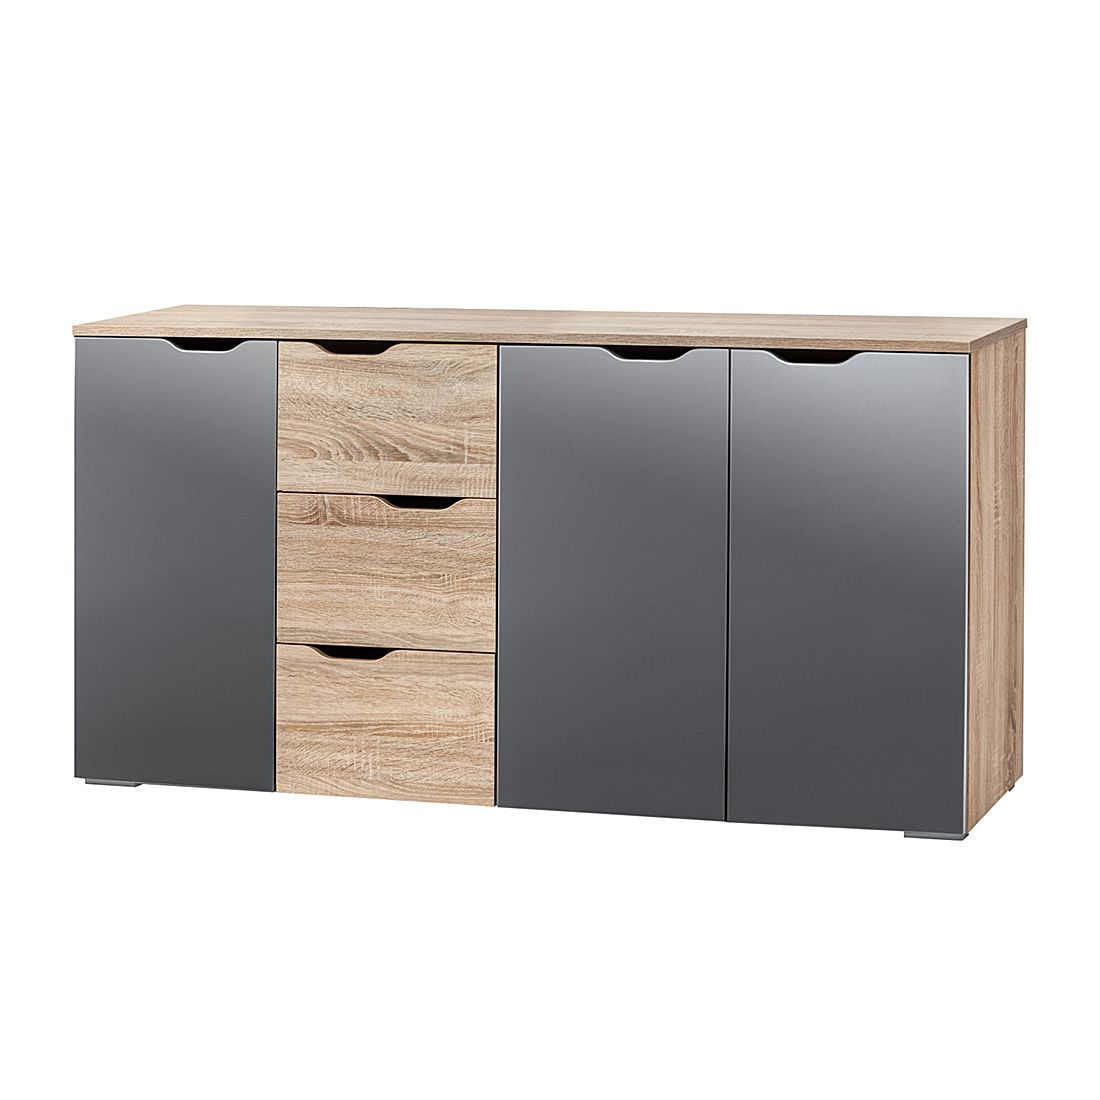 sonoma eiche grau kommode interessante. Black Bedroom Furniture Sets. Home Design Ideas